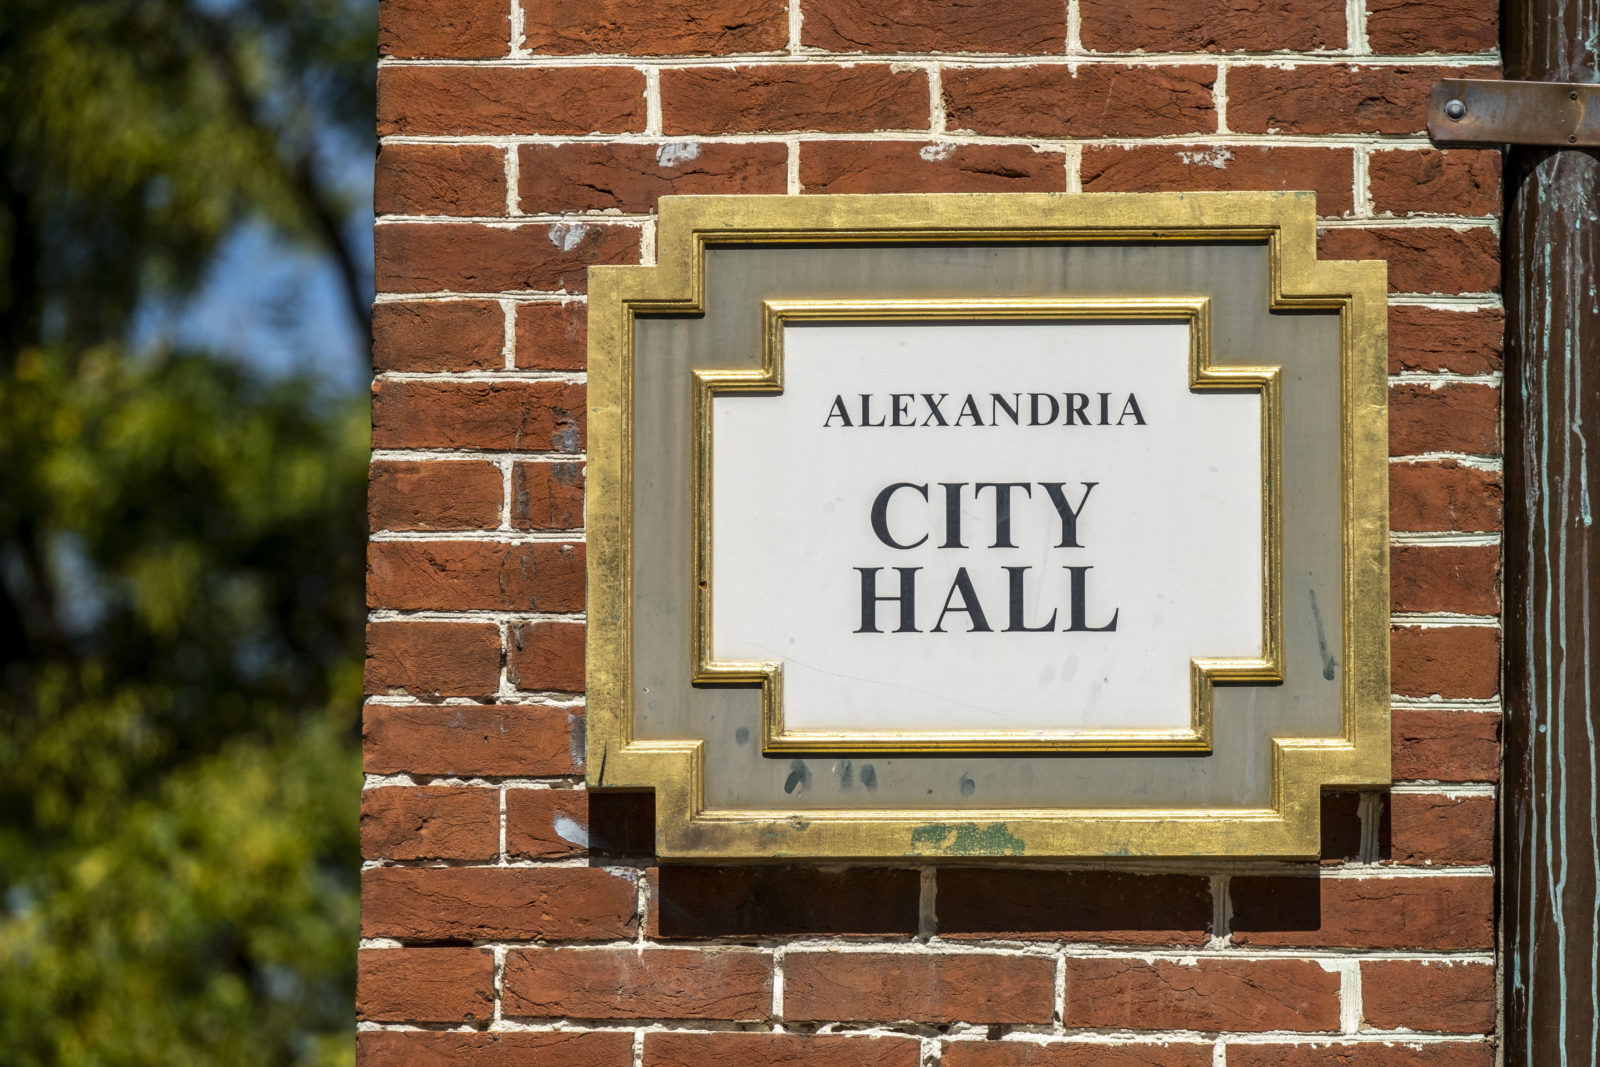 Too noisy? City Council is considering revising Alexandria's noise ordinance